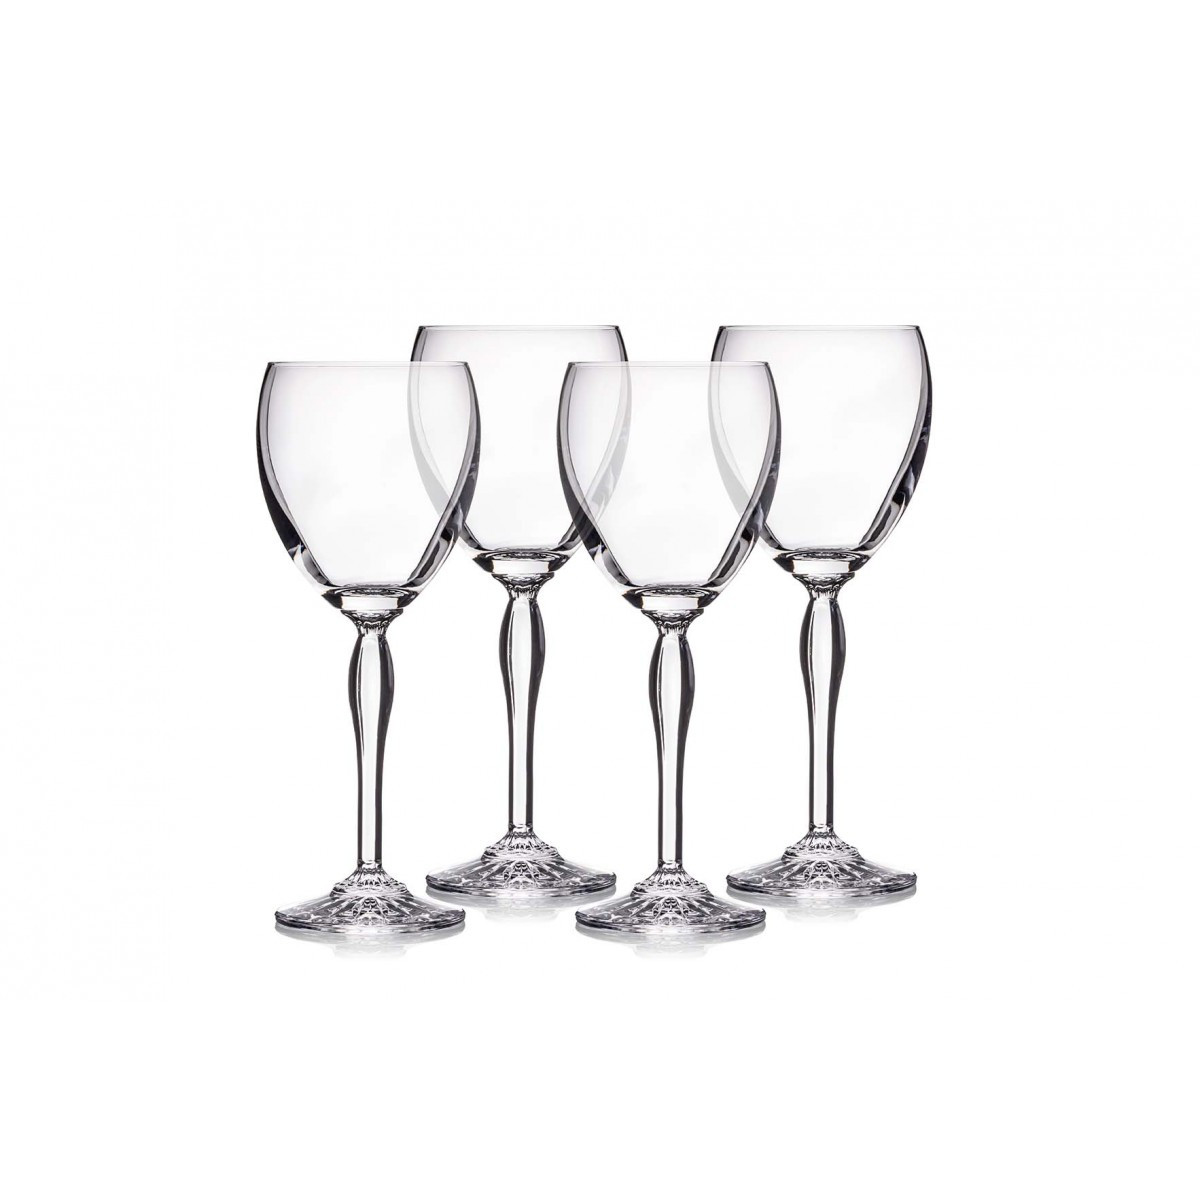 marquis by waterford rainfall vase 11 of ventura all purpose wine set of 4 marquis by waterford us in ventura all purpose wine set of 4